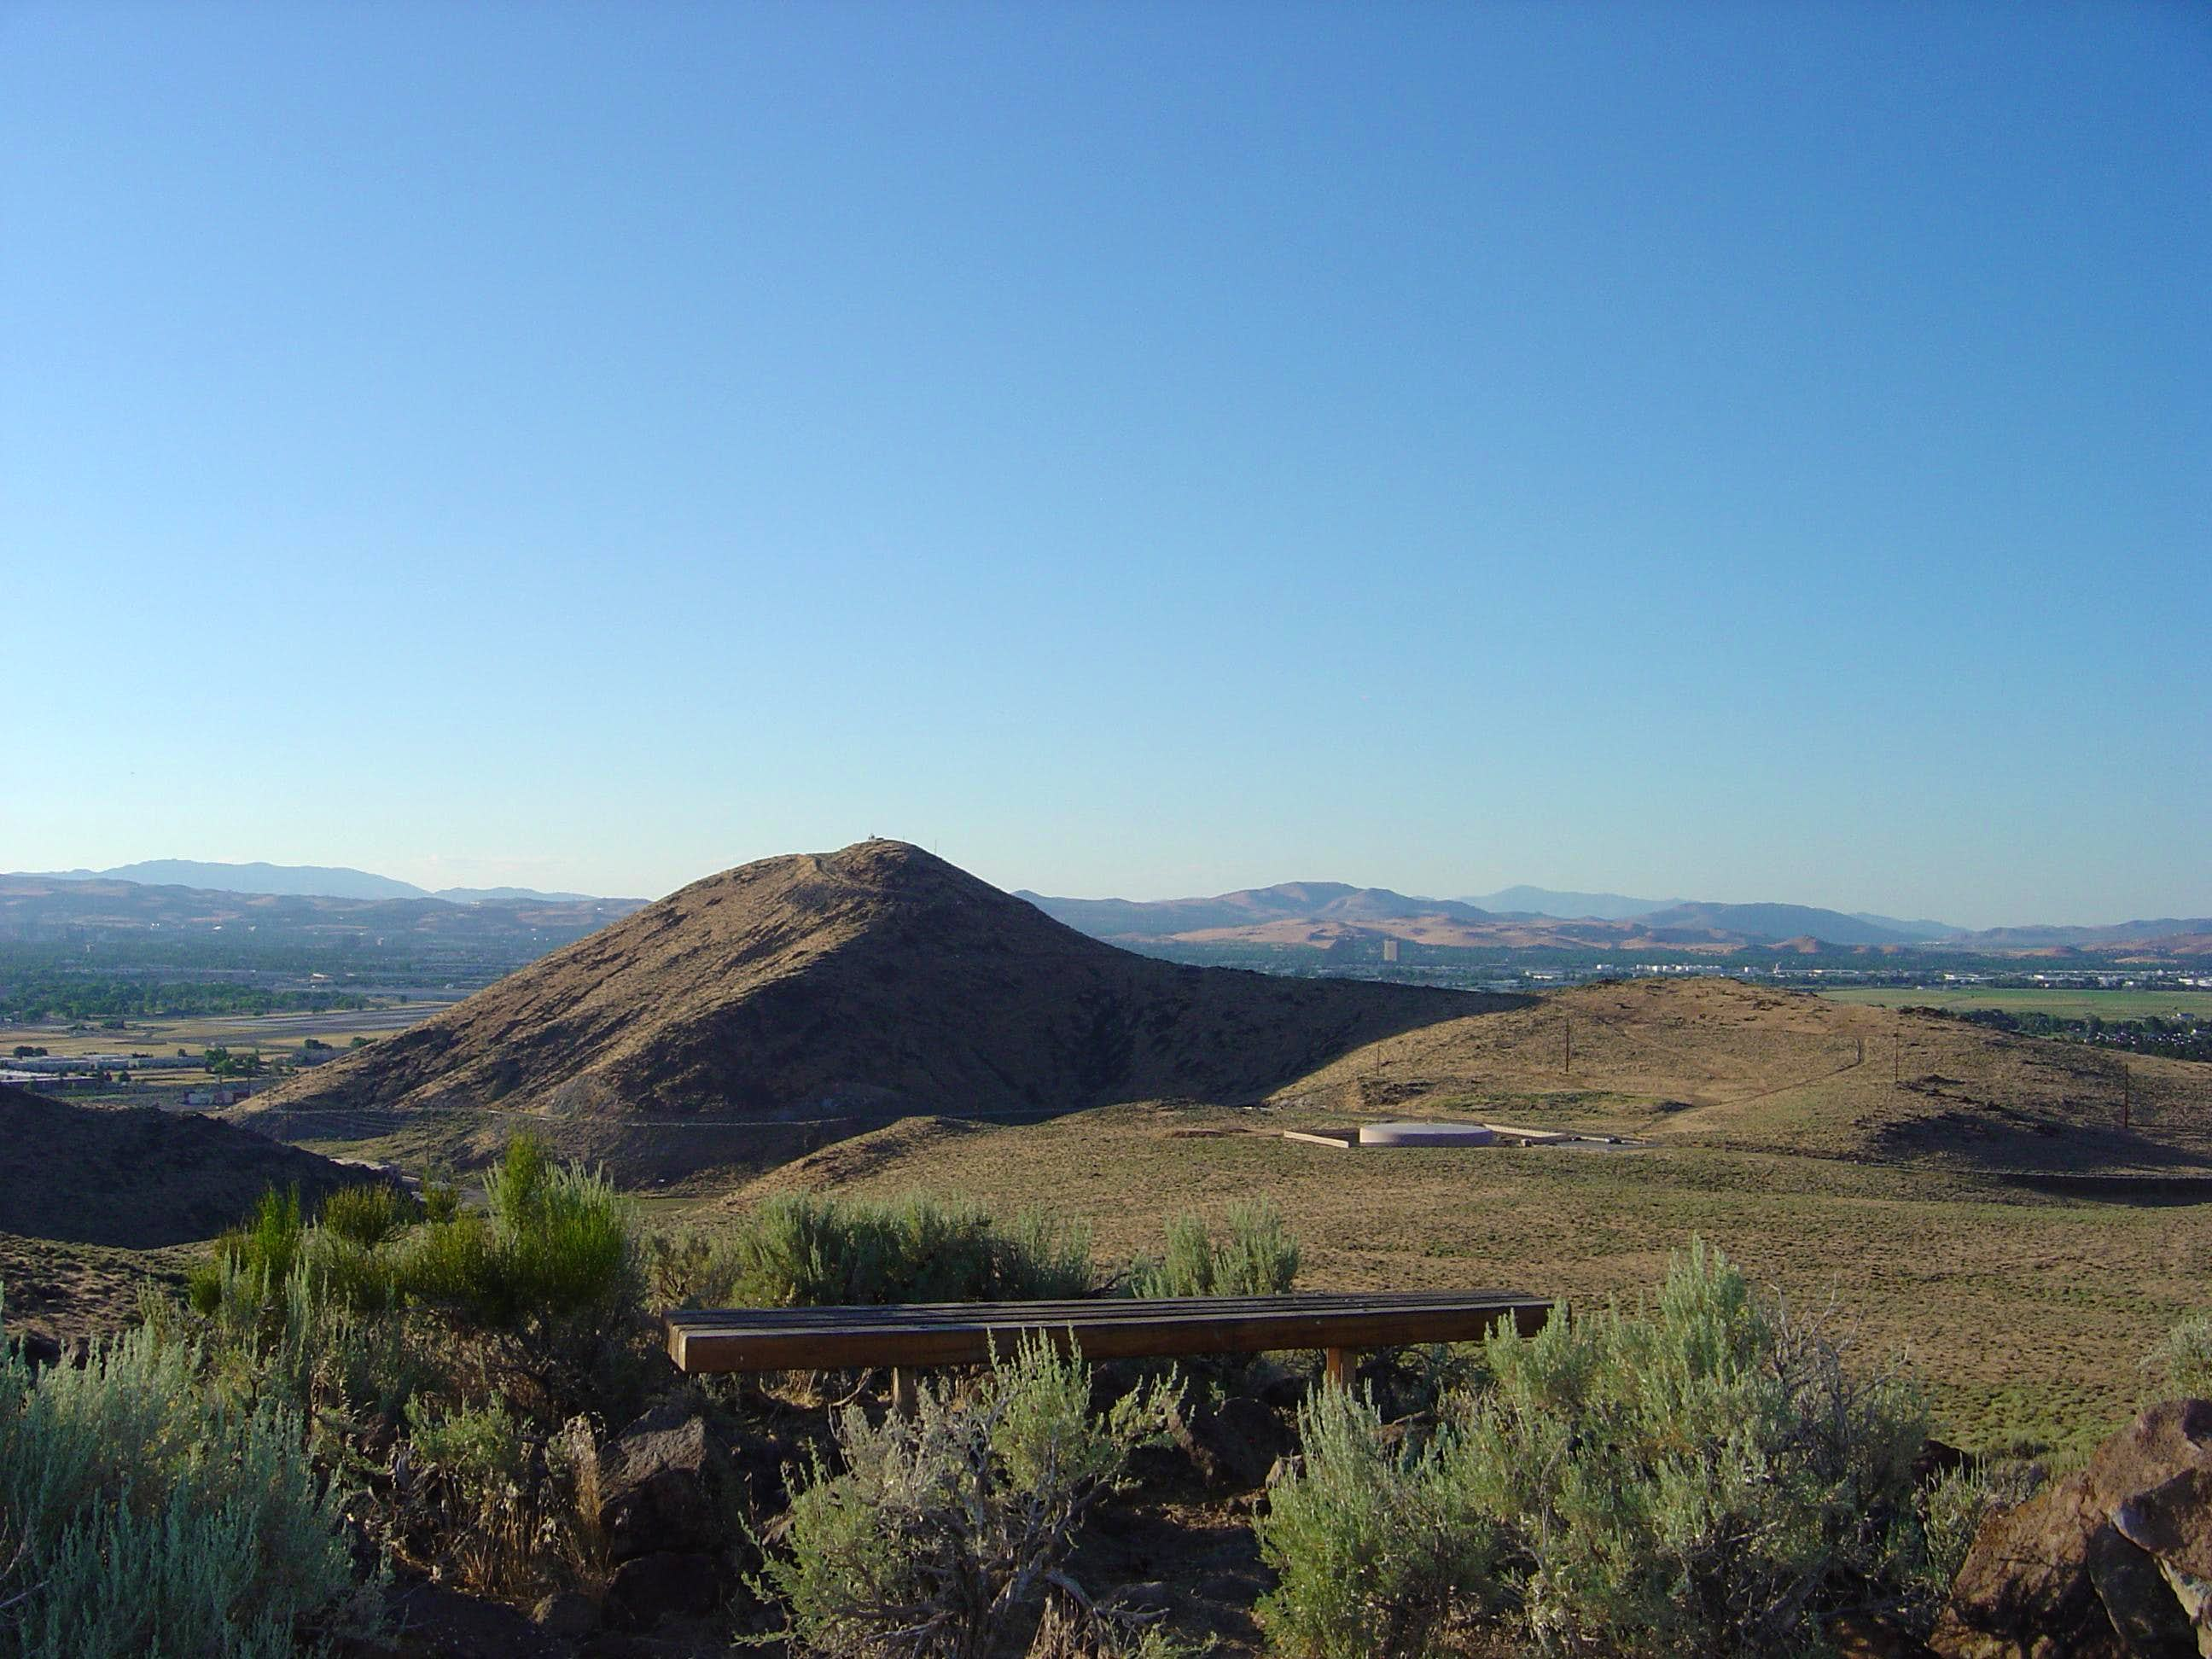 Rattlesnake Mountain